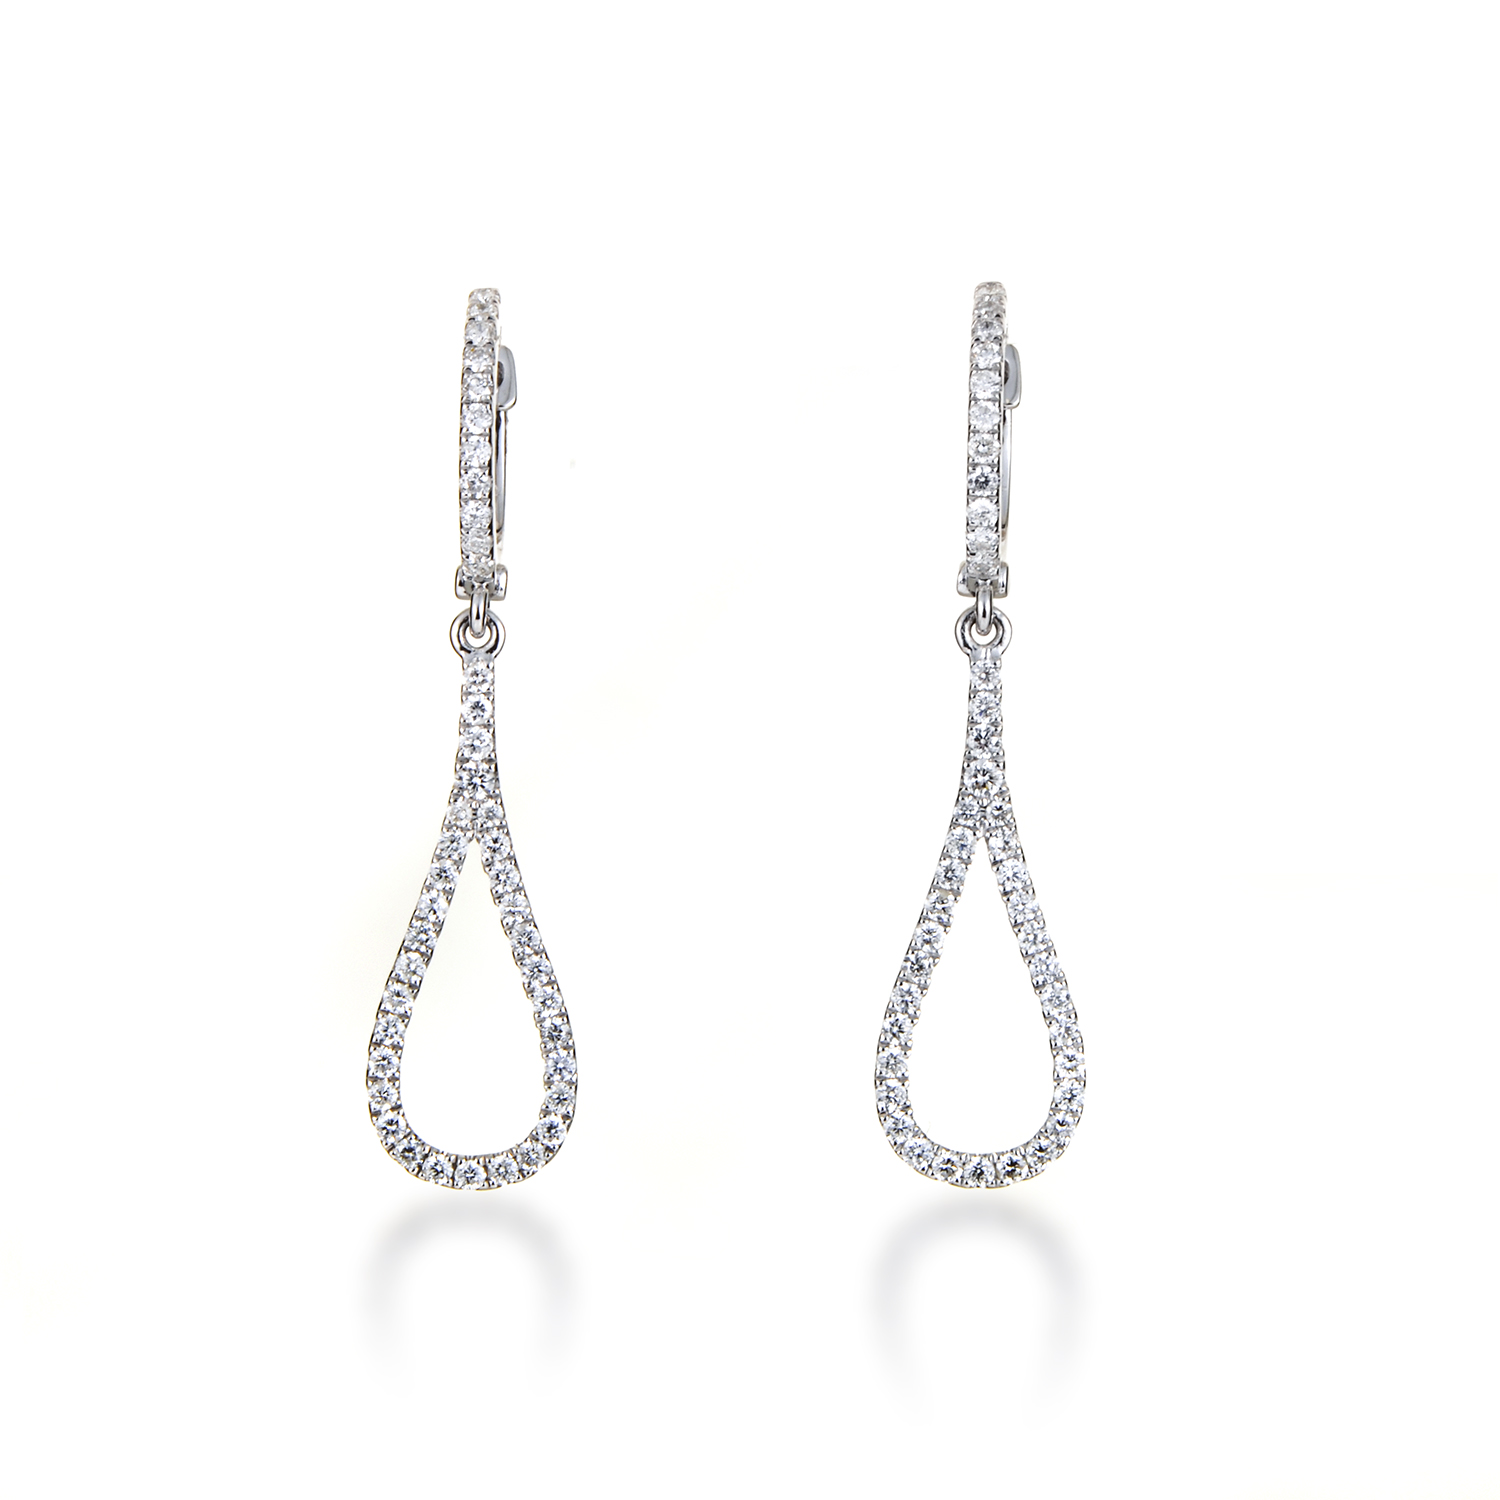 Women's Thin 18K White Gold Diamond Pave Teardrop Earrings